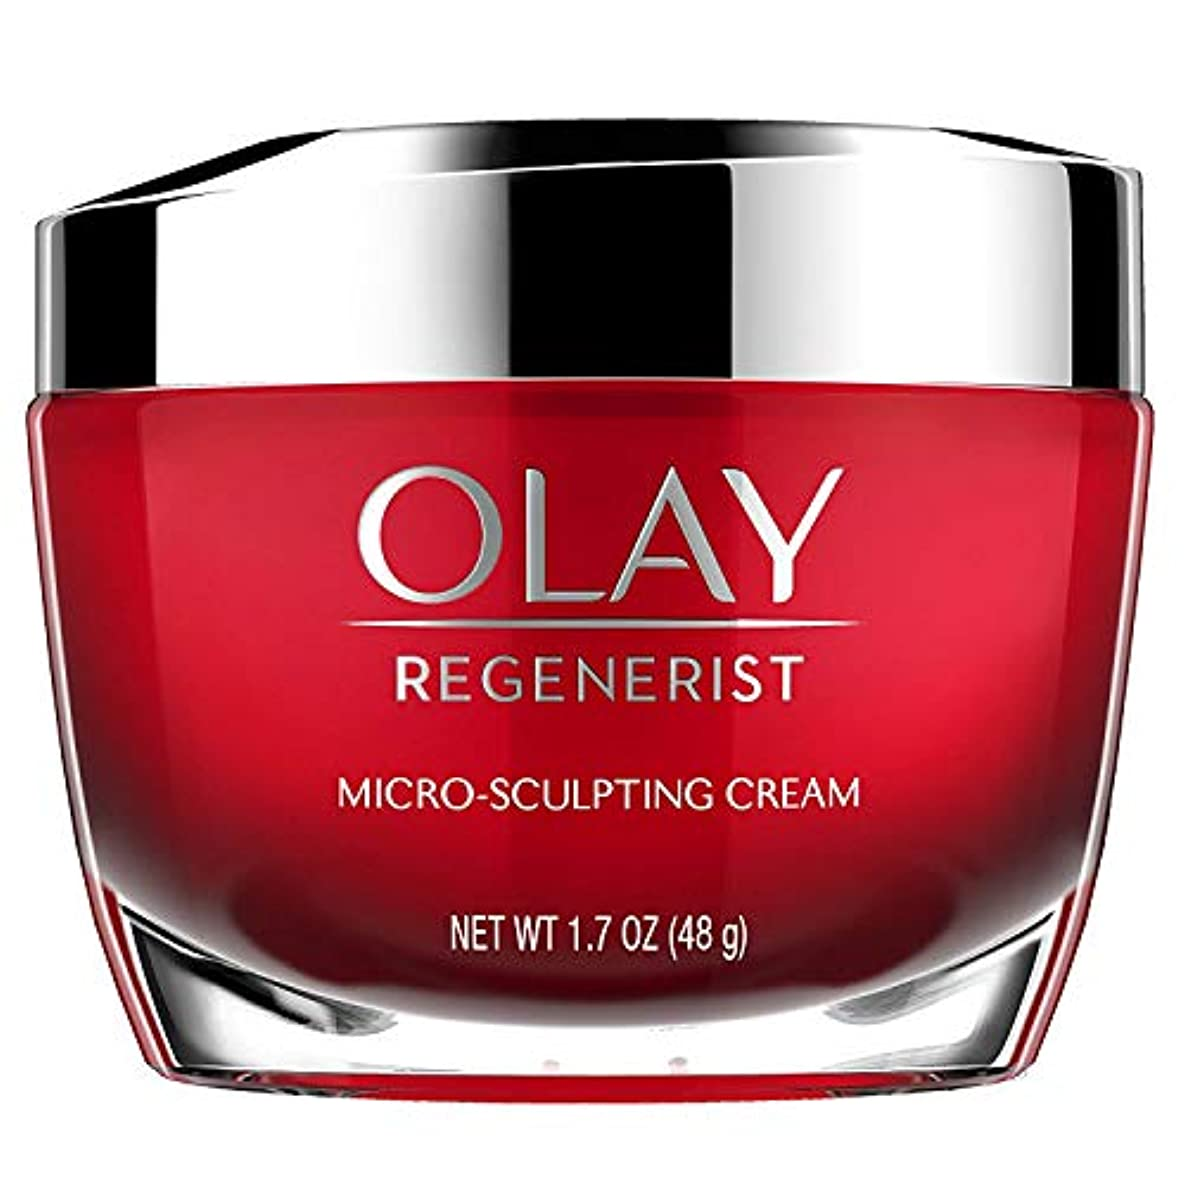 同行するさておき[(オレイ) Olay] [Face Moisturizer with Collagen Peptides by Olay Regenerist, Micro-Sculpting Cream, 1.7 oz] (並行輸入品)